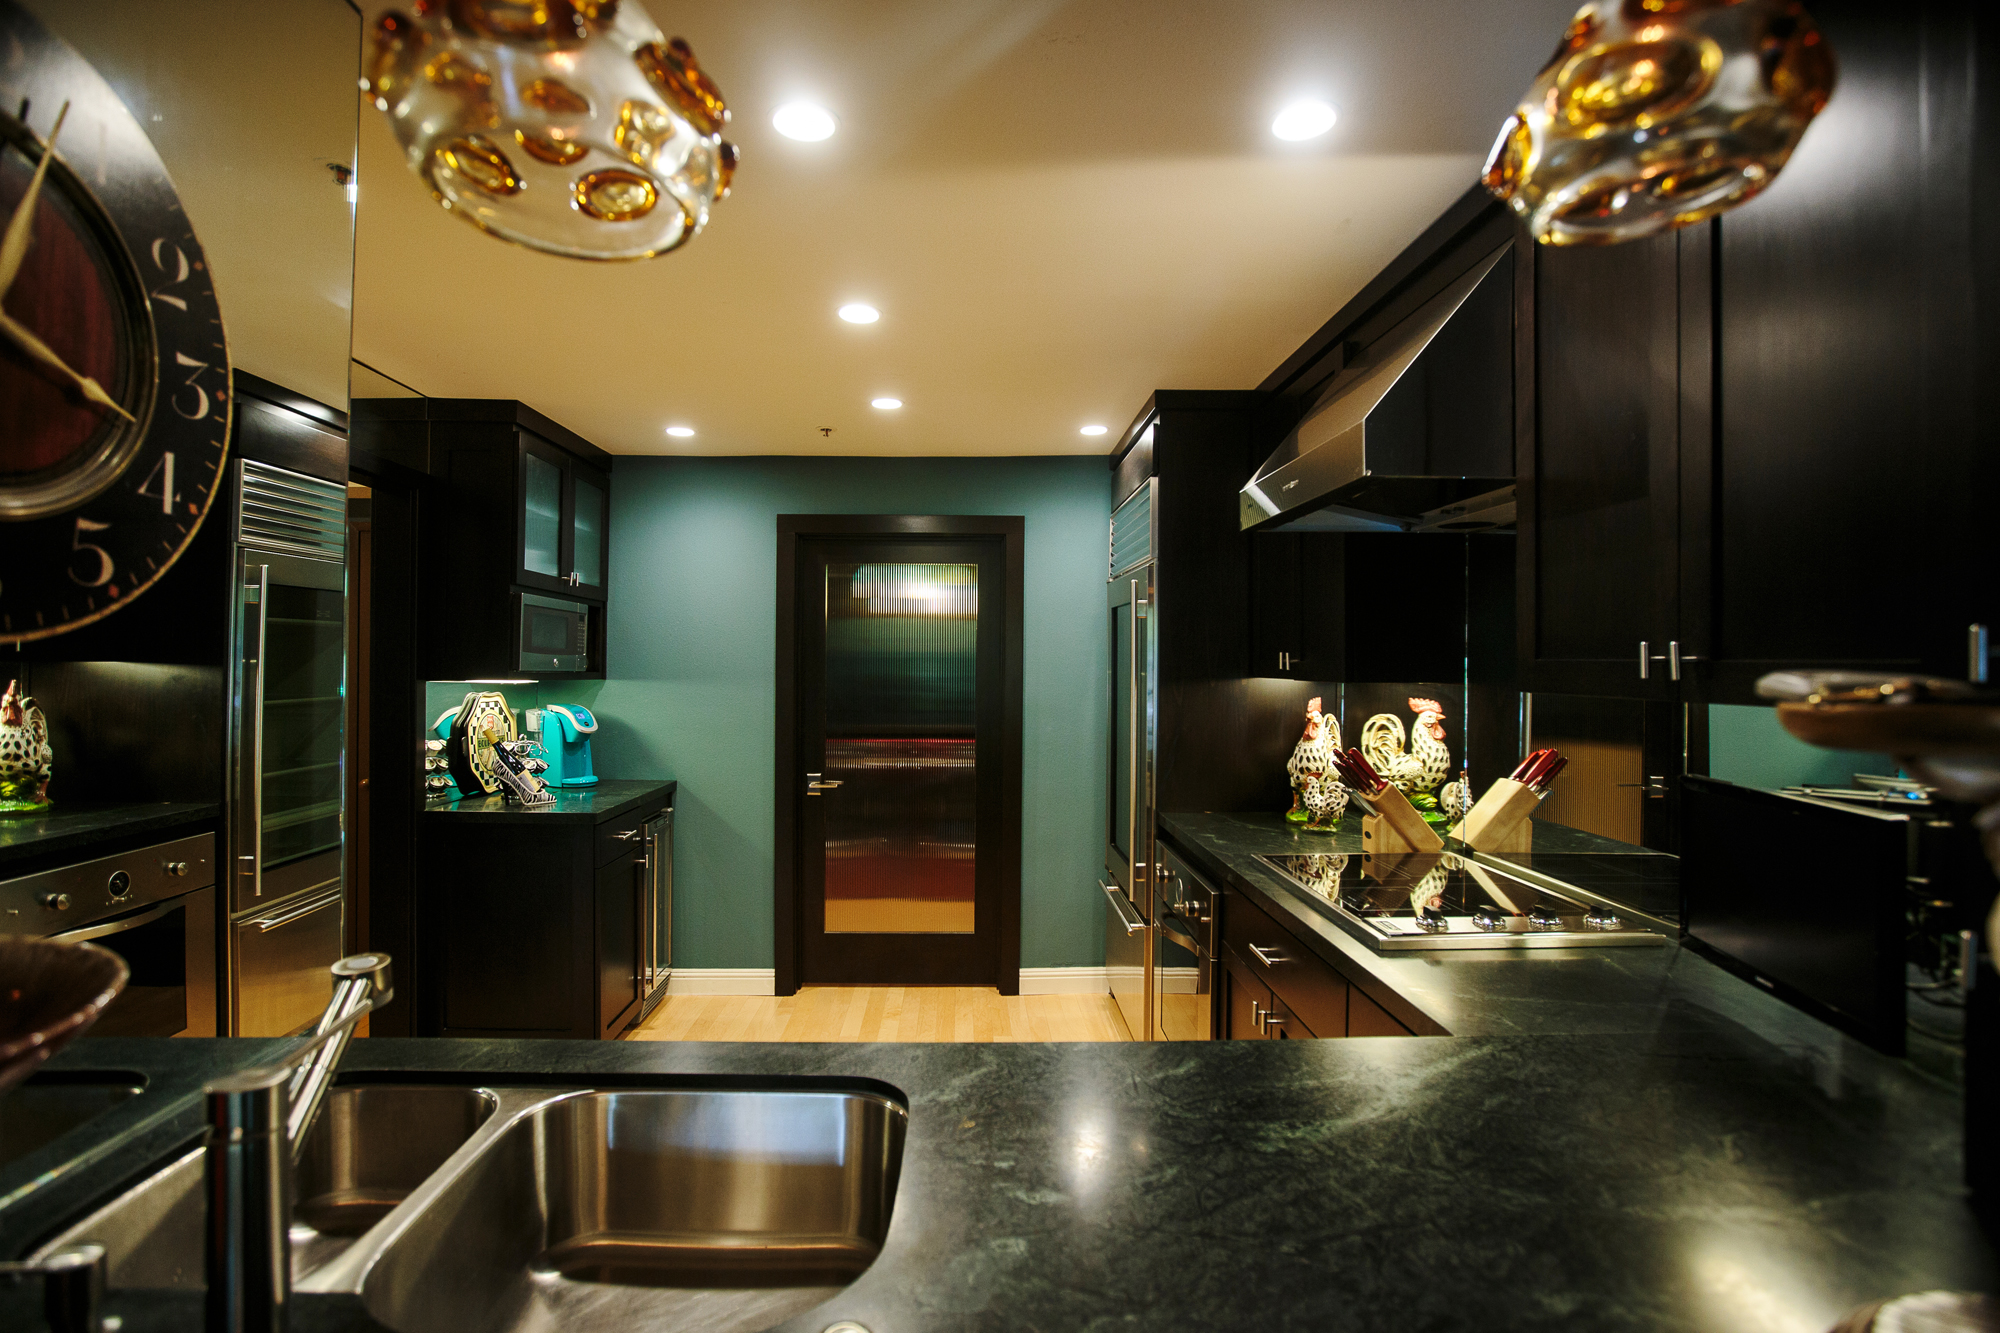 Verde Colored Kitchen Sinks